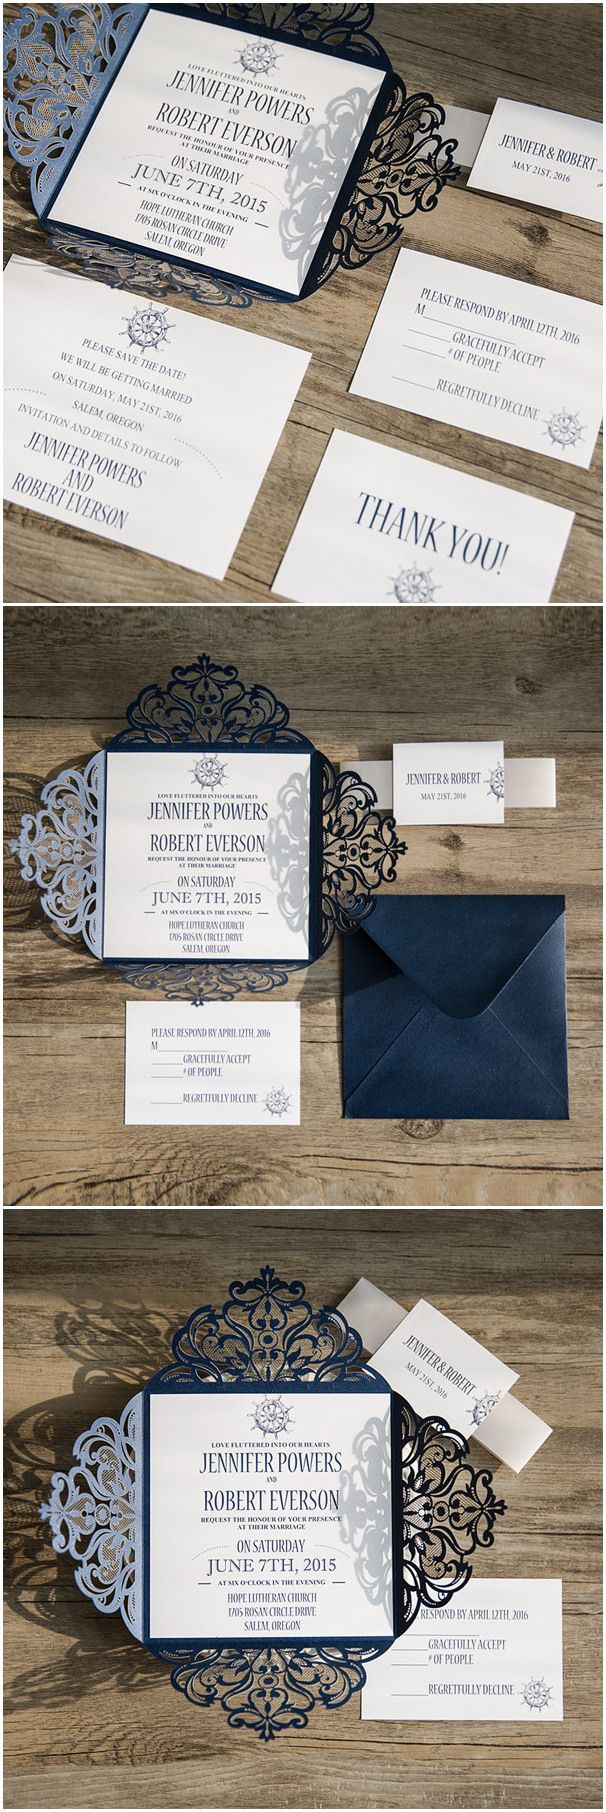 deer hunter wedding invitations%0A classic nautical themed navy blue laser cut wedding invitations